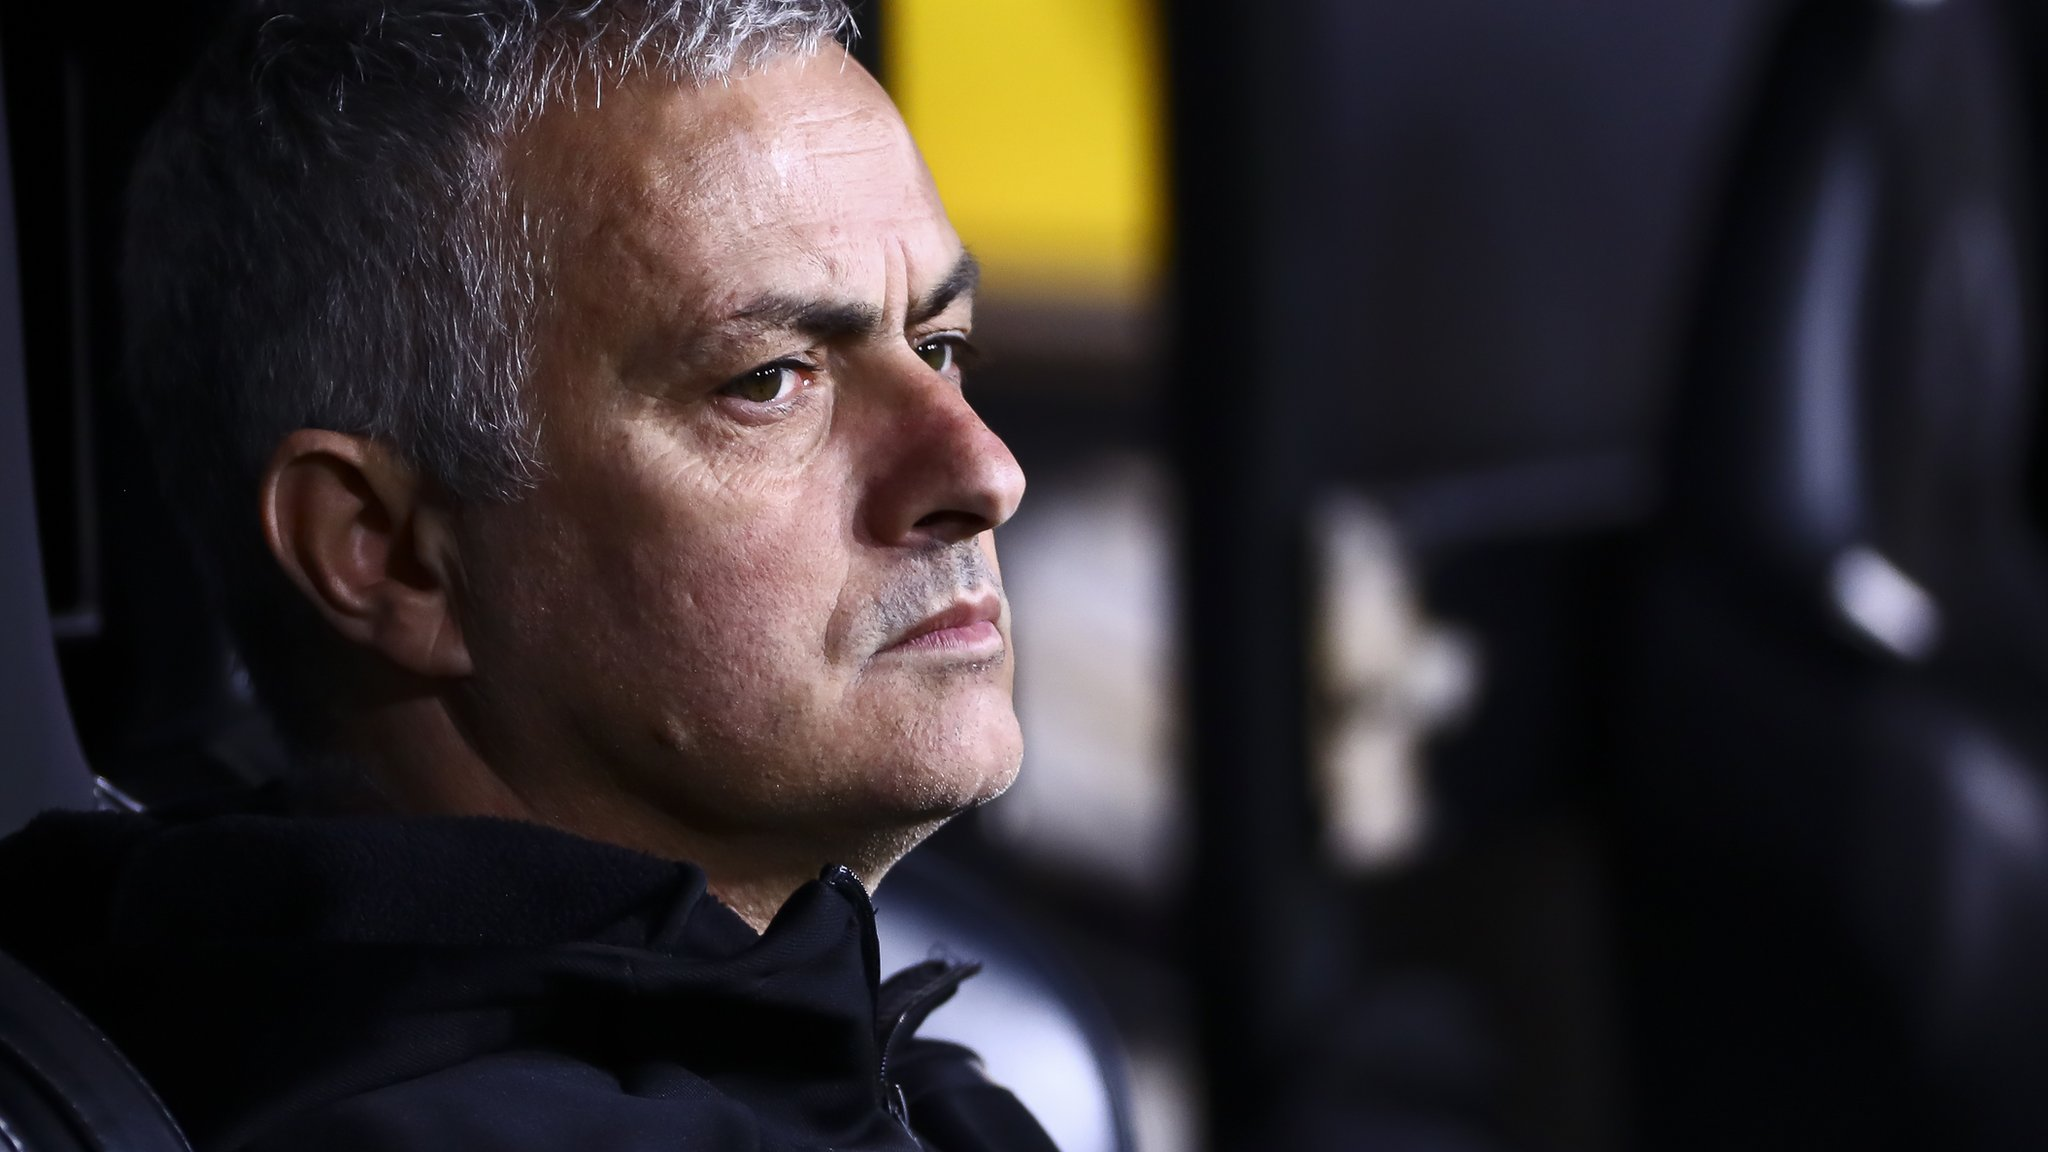 'Take stock and reset structure' - Neville on Man Utd